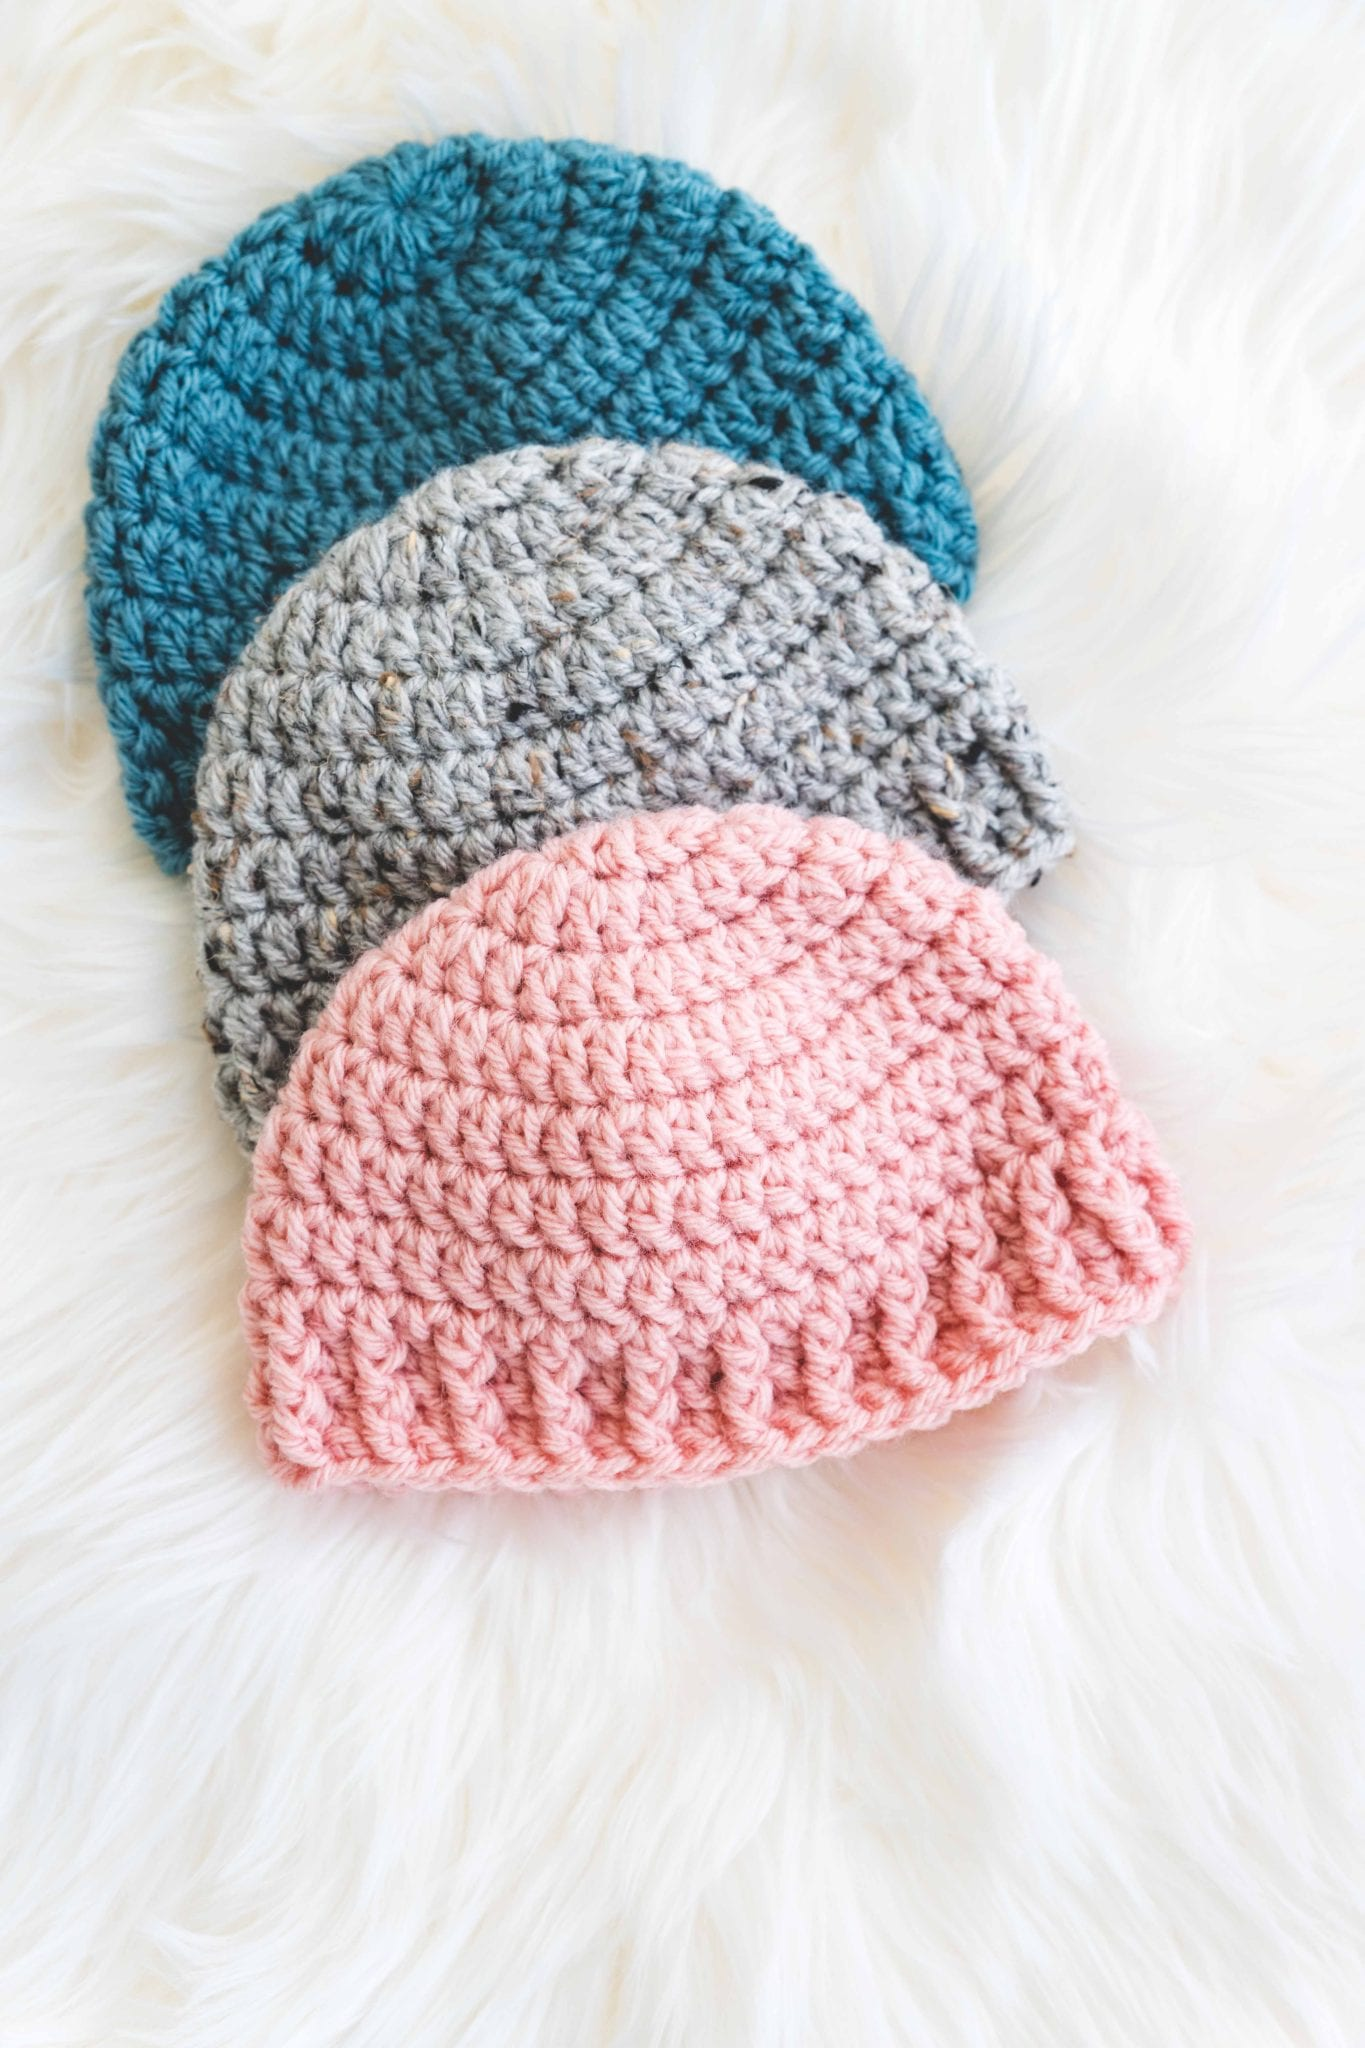 Crochet baby hat with simple stitches and gender neutral ribbing. Made in pink, blue, and grey.